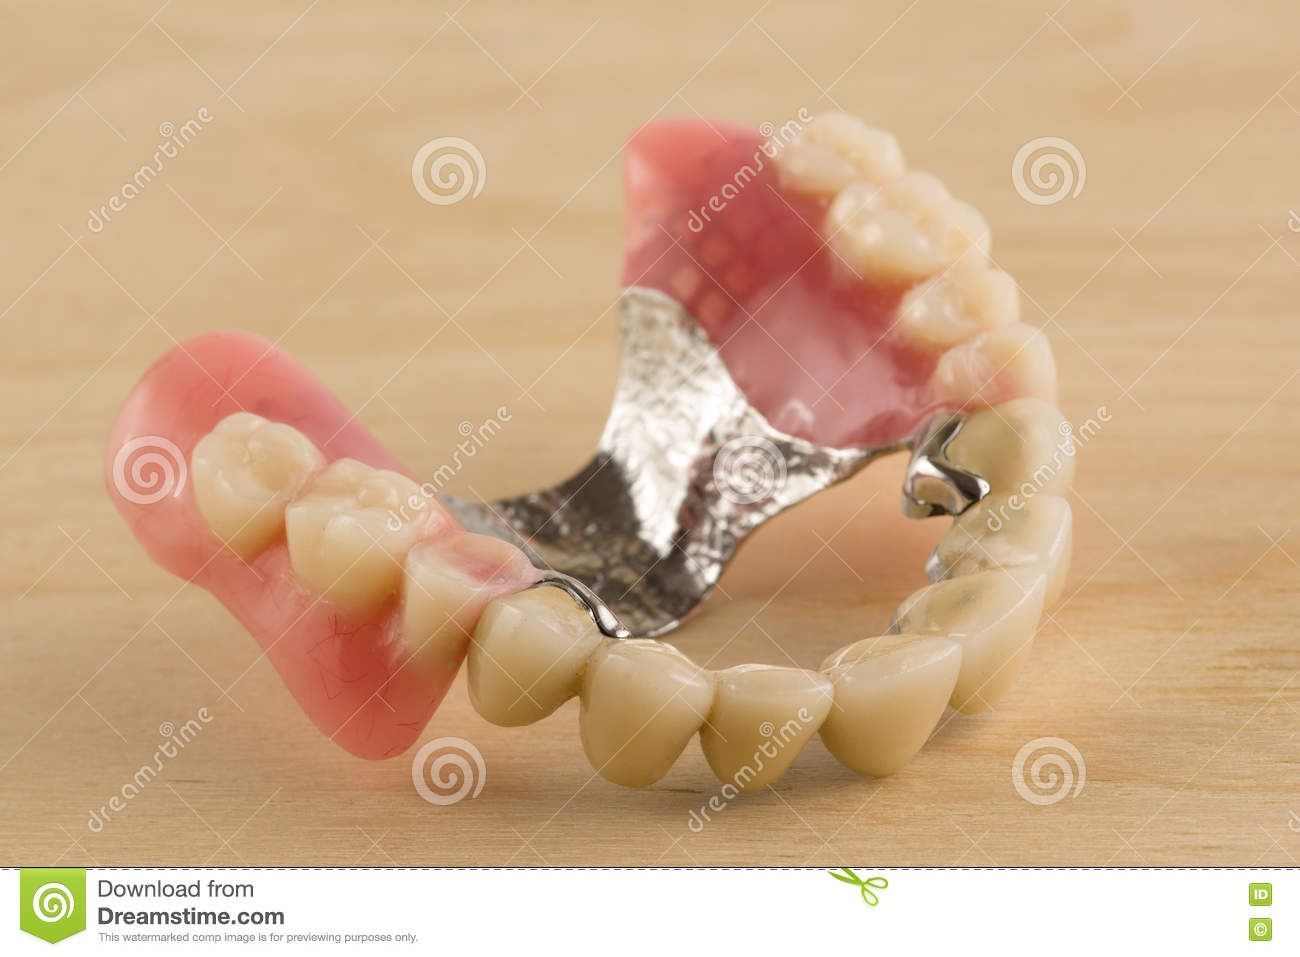 how to clean dentures with metal